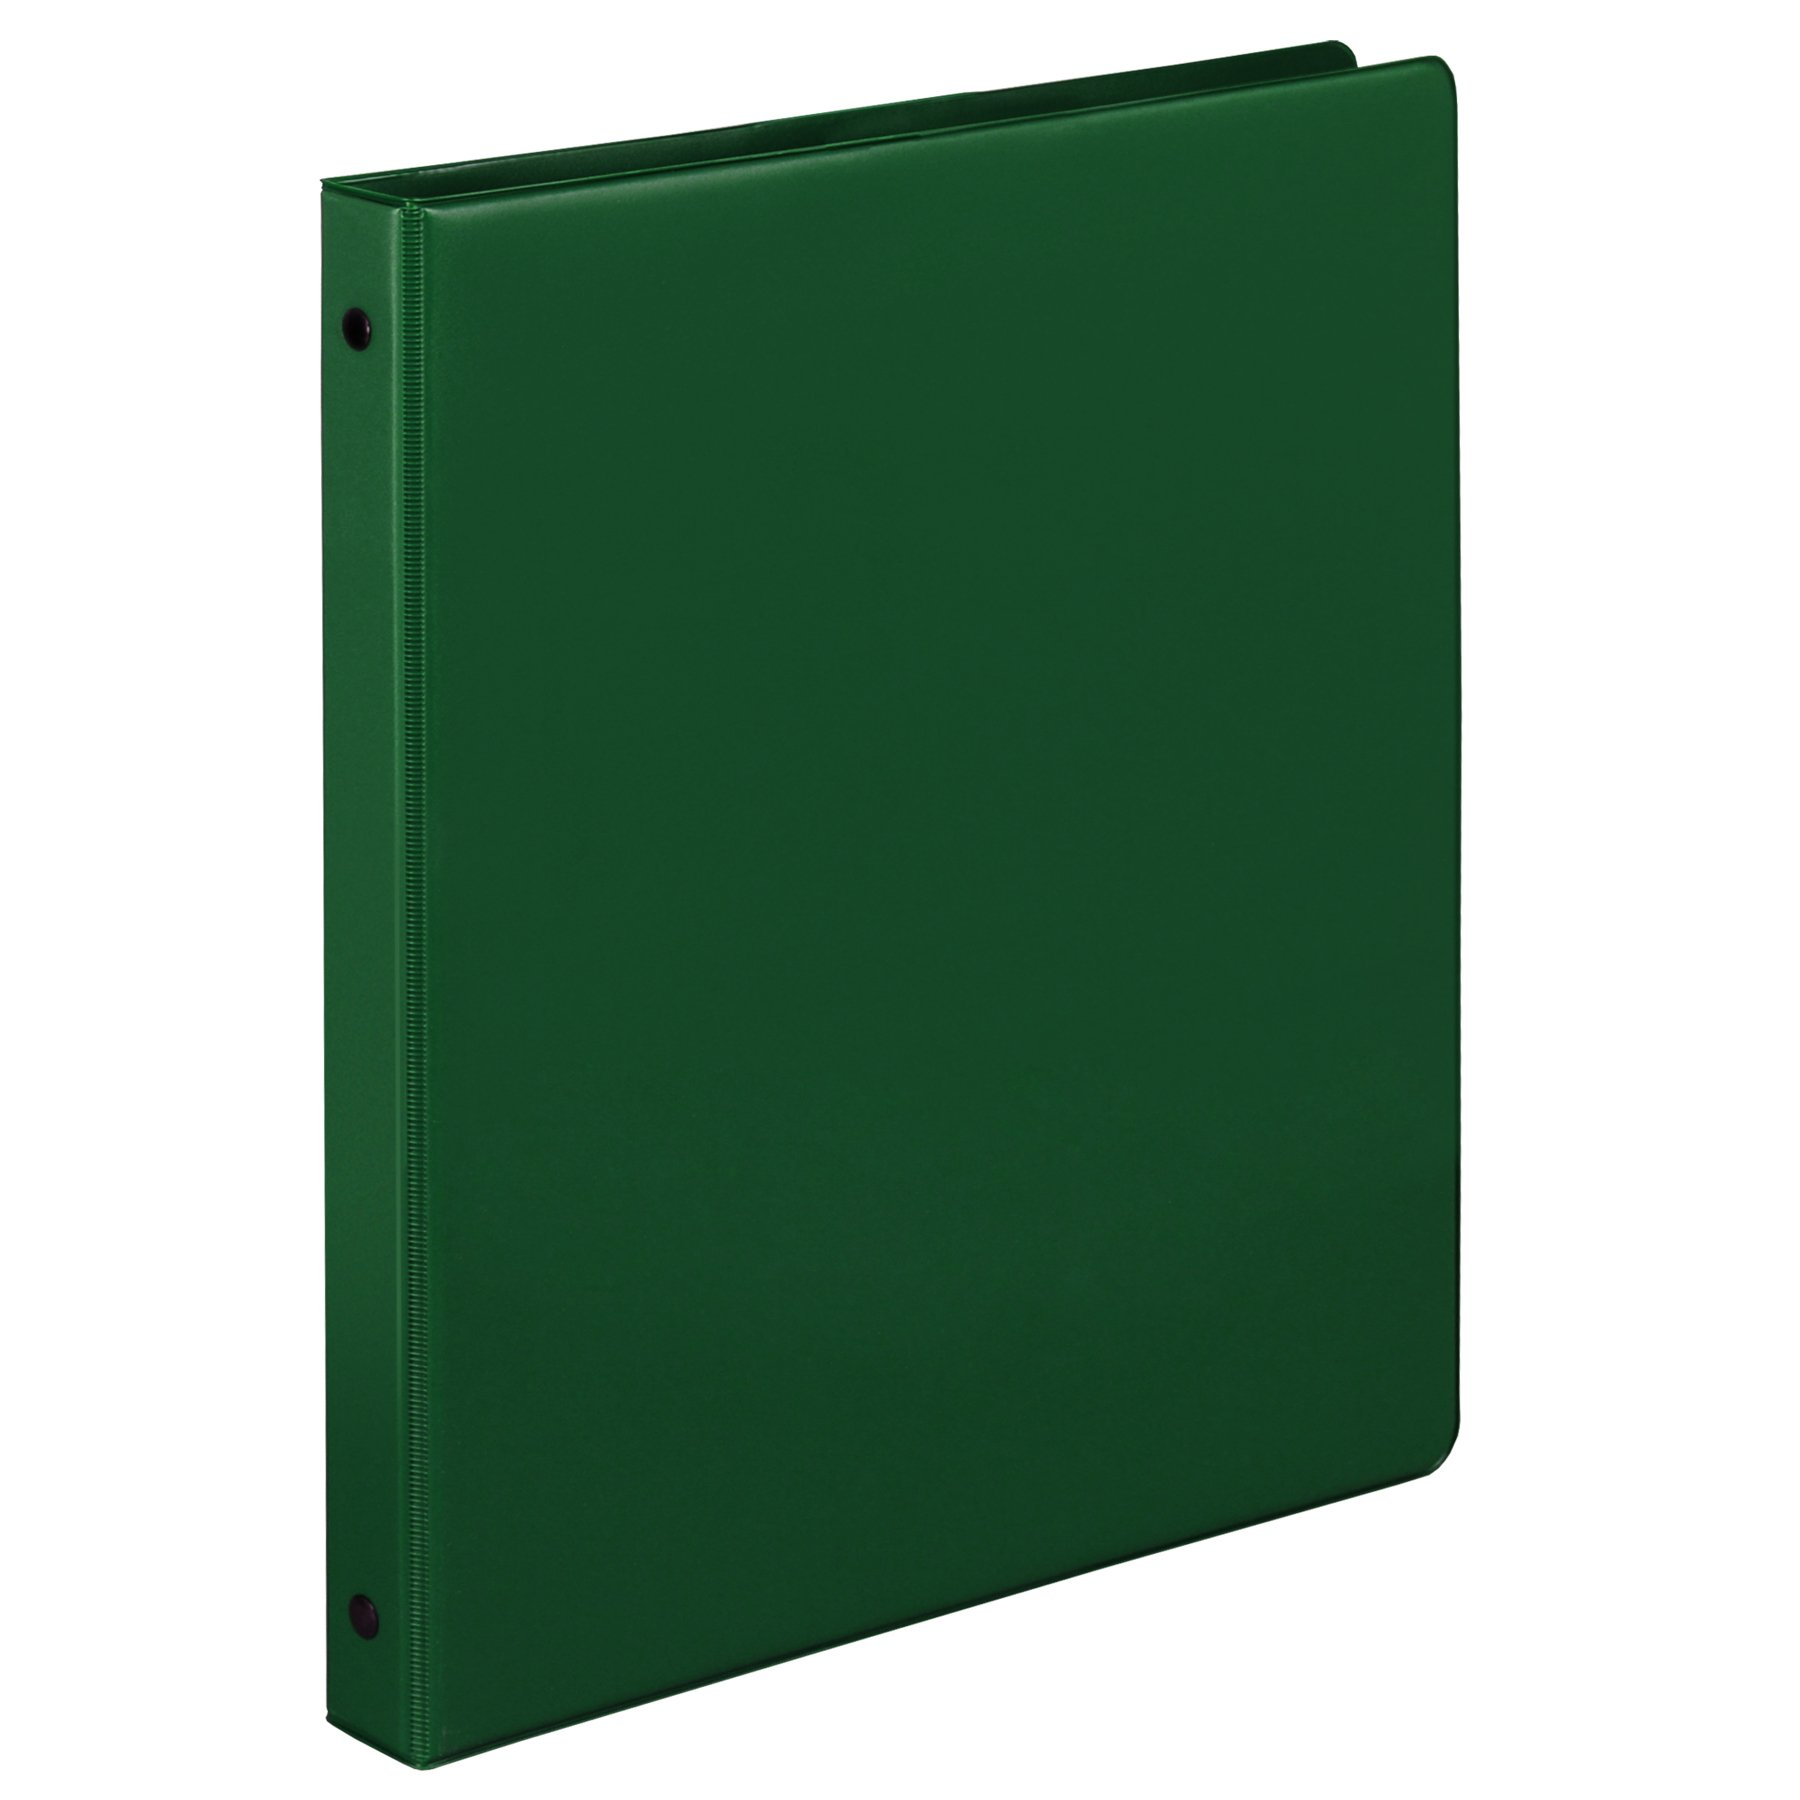 Samsill .5 Inch Value Document Storage 3 Ring Binder, Round Ring, 11 x 8.5 Inches, Green (11104)